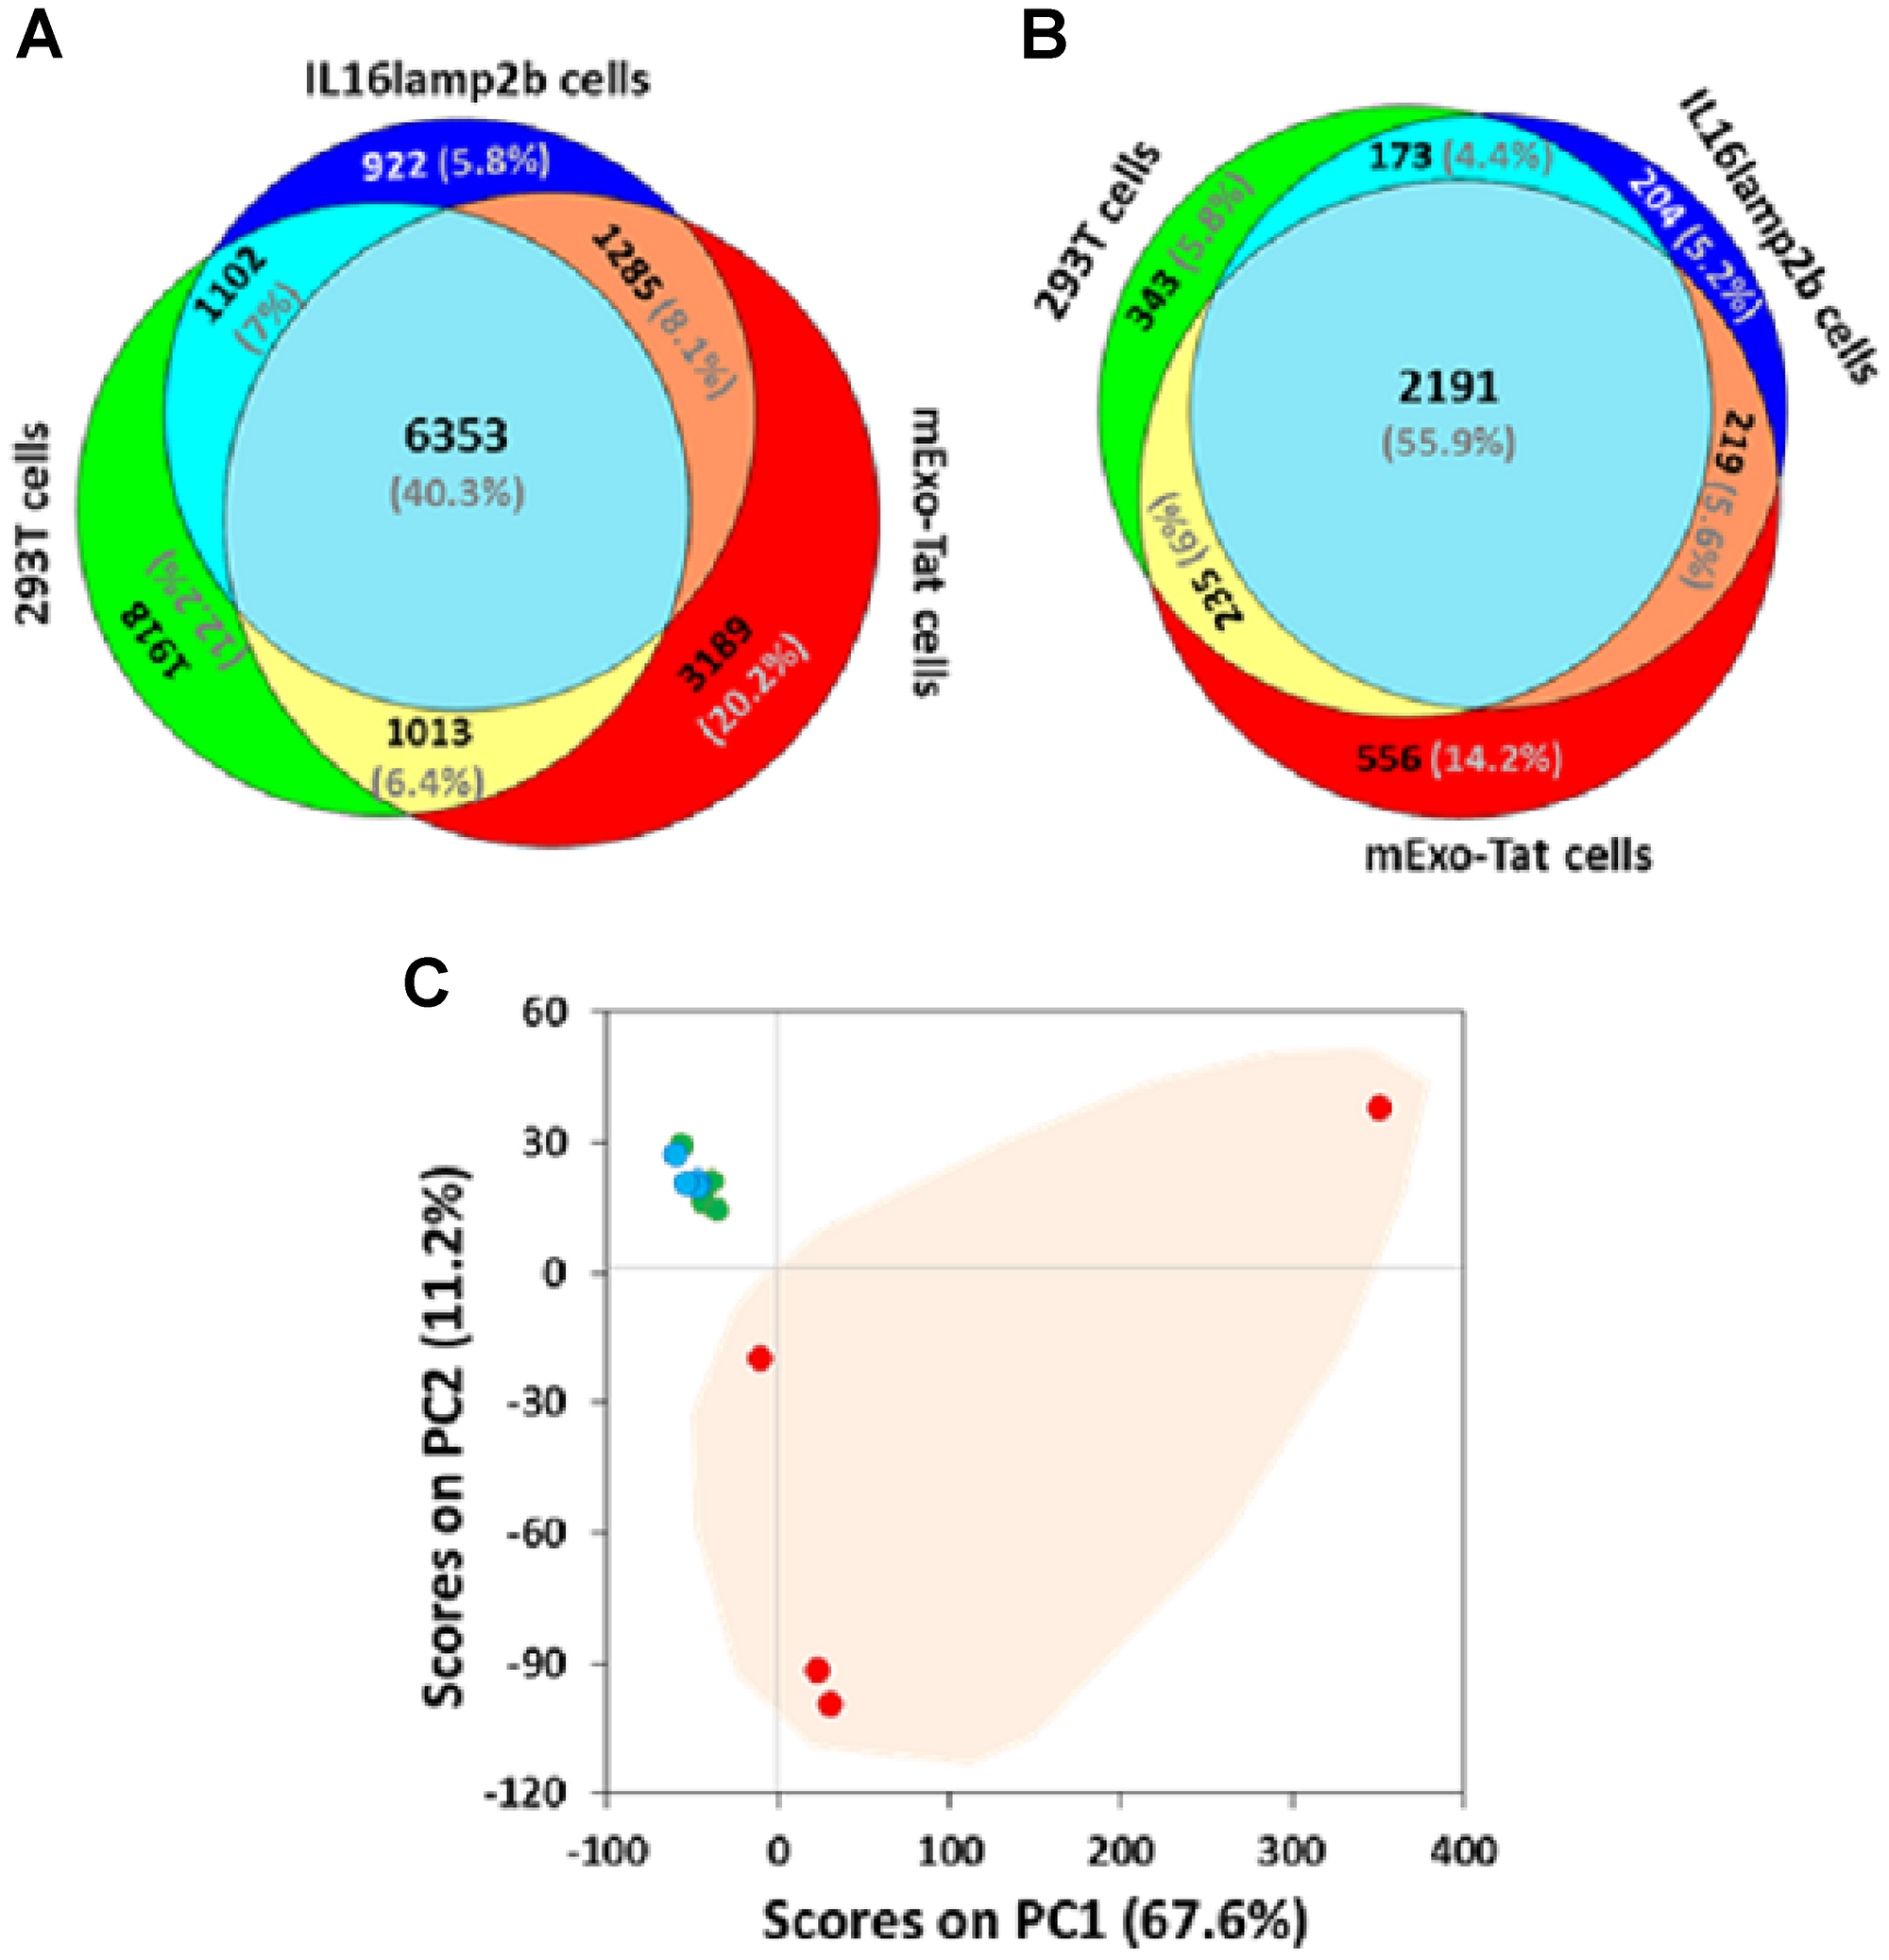 Comparative proteomic profiling of the peptides/proteins identified from 293T, IL16lamp2b and mExo-Tat samples.